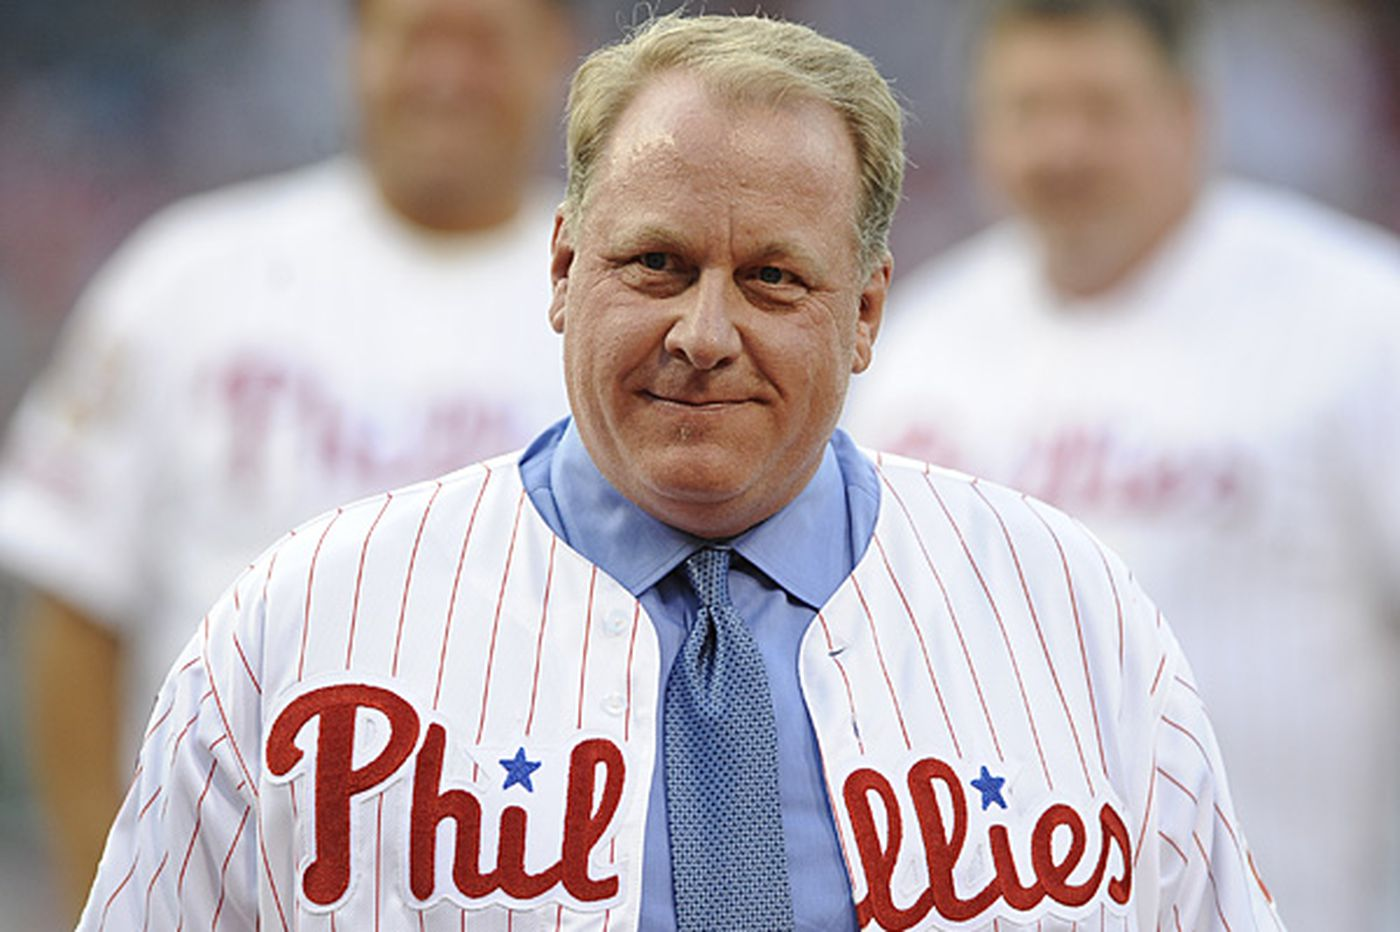 Former Phillie Curt Schilling diagnosed with cancer